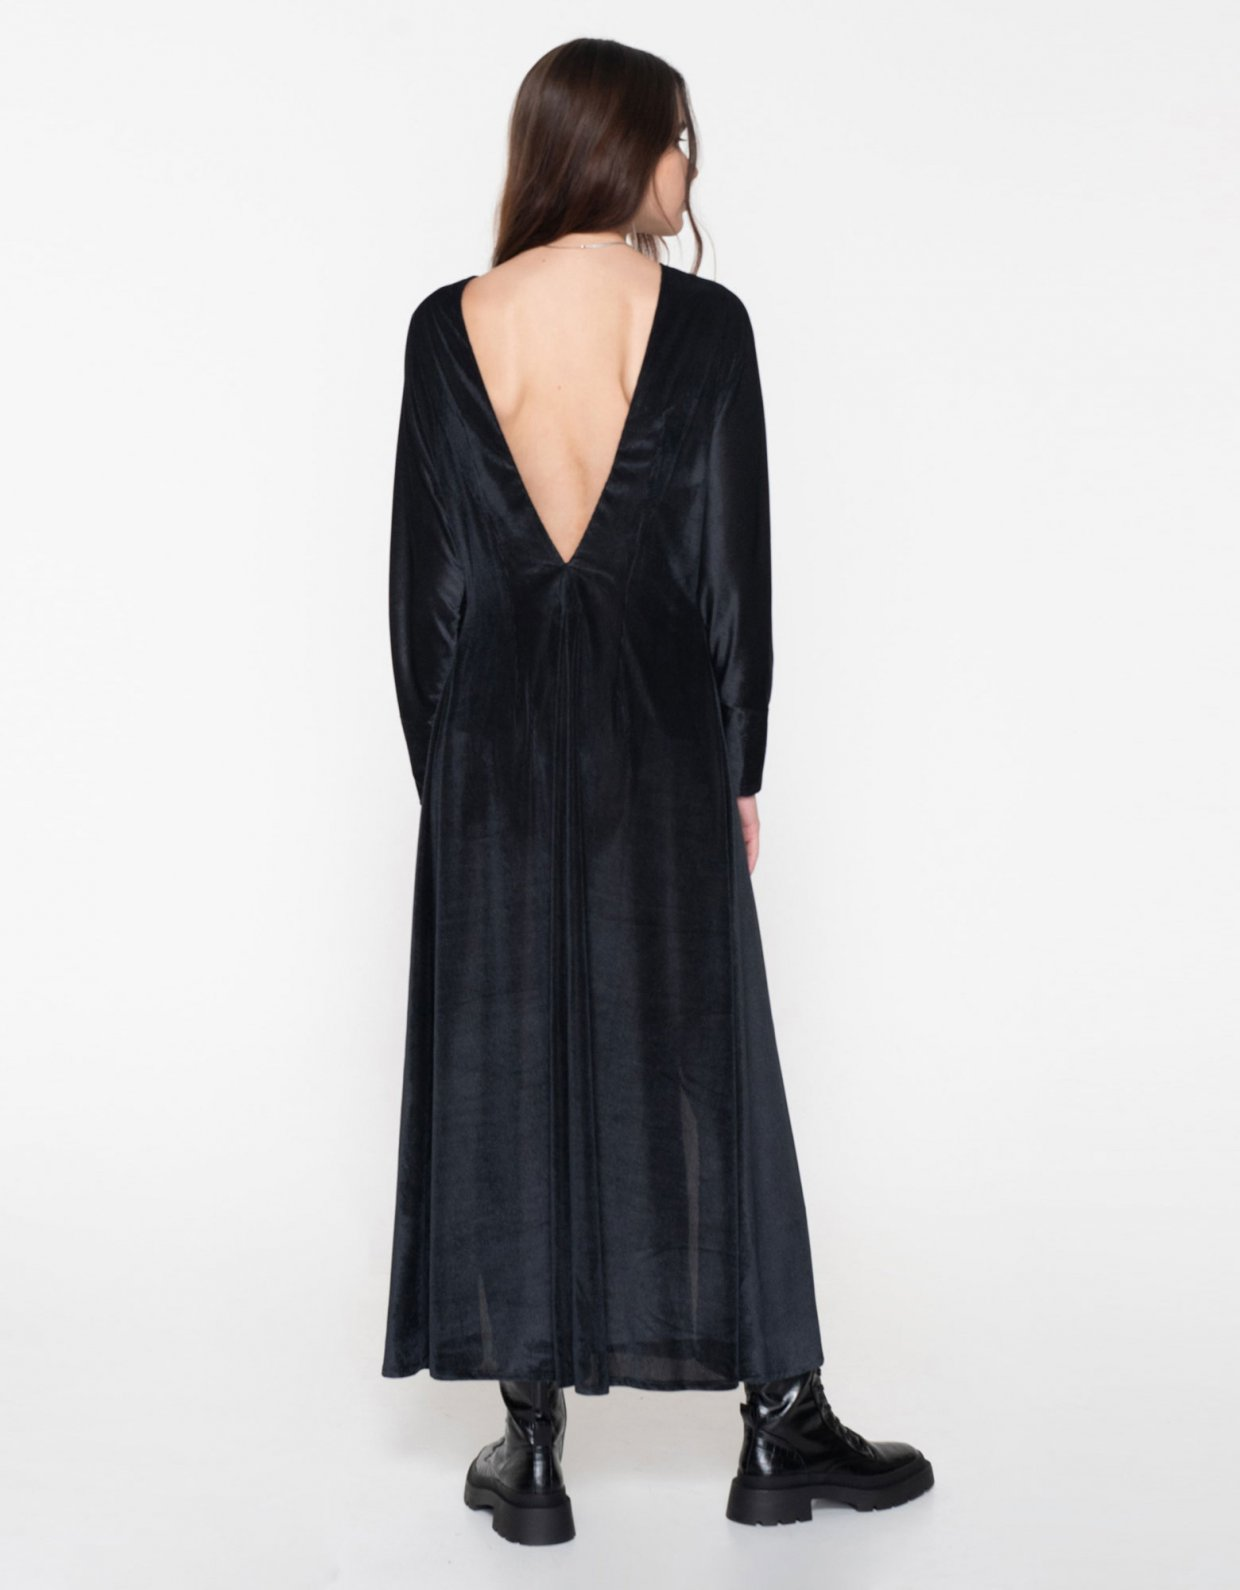 Nadia Rapti R.E.M. cord slit dress black